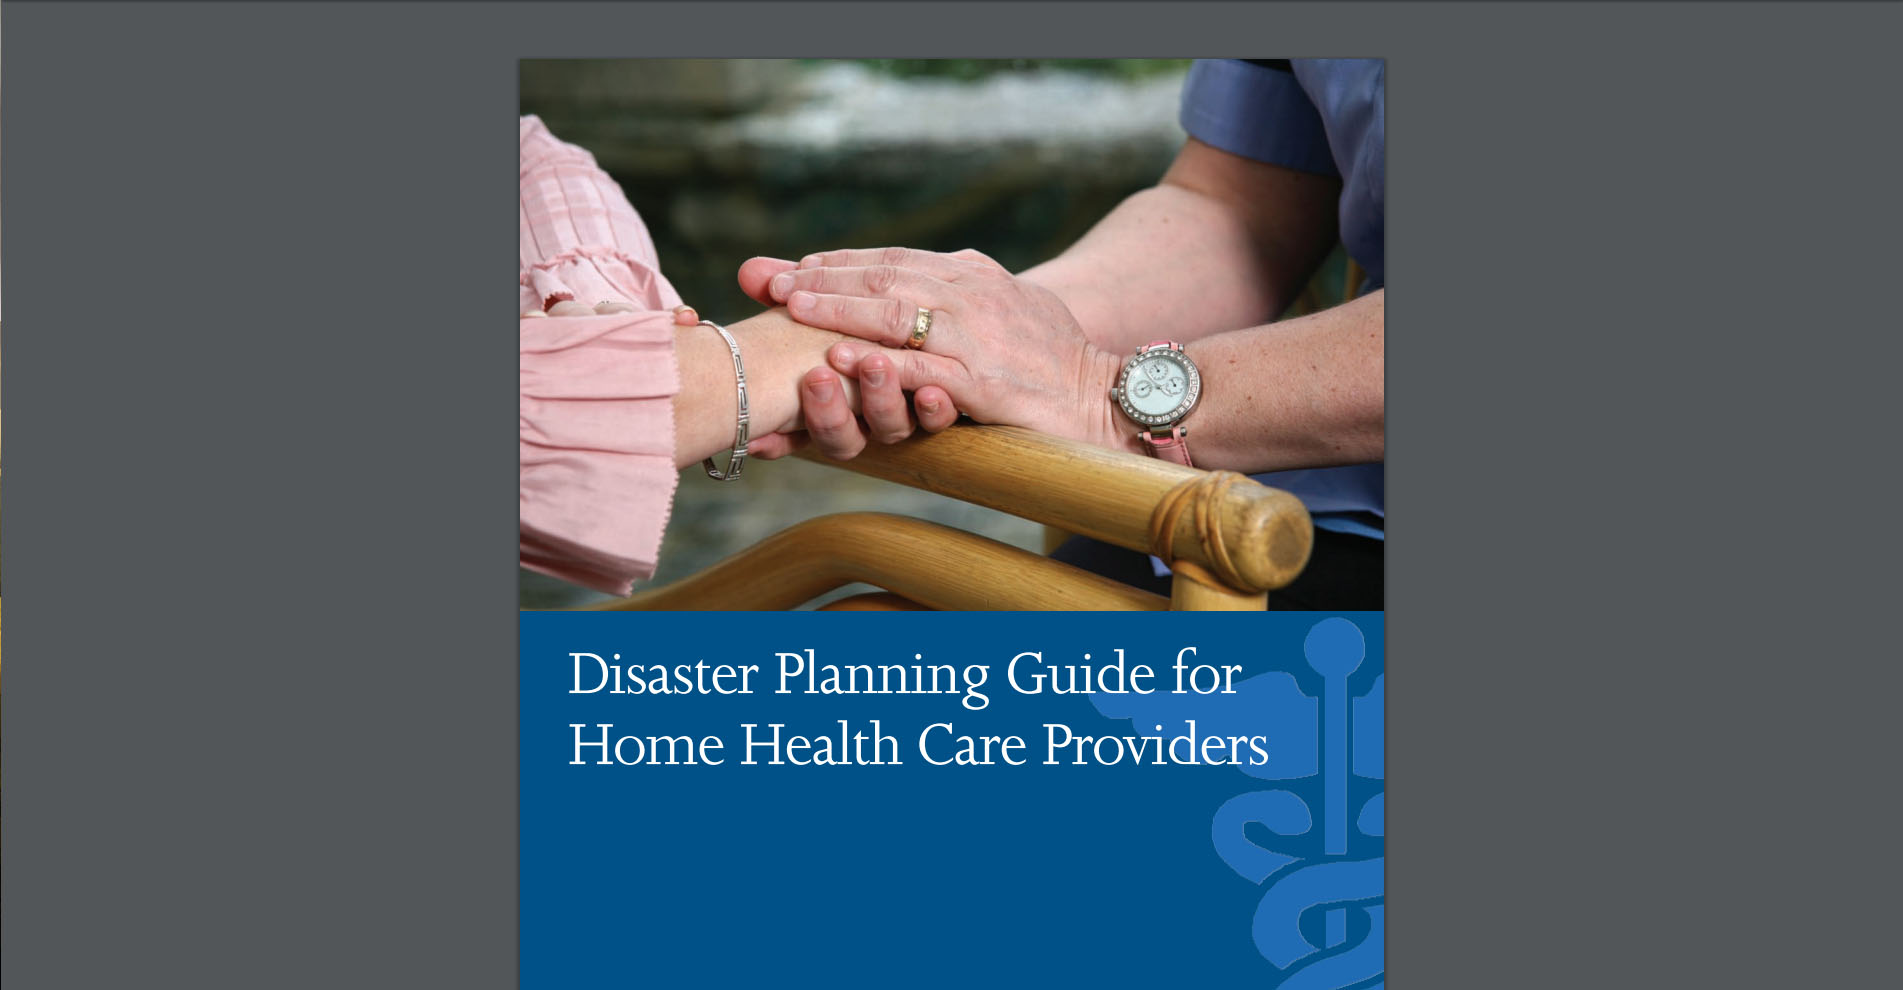 Disaster Planning Guide for Home Health Care Providers home health care disaster plan home plan,Plan Home Health Care